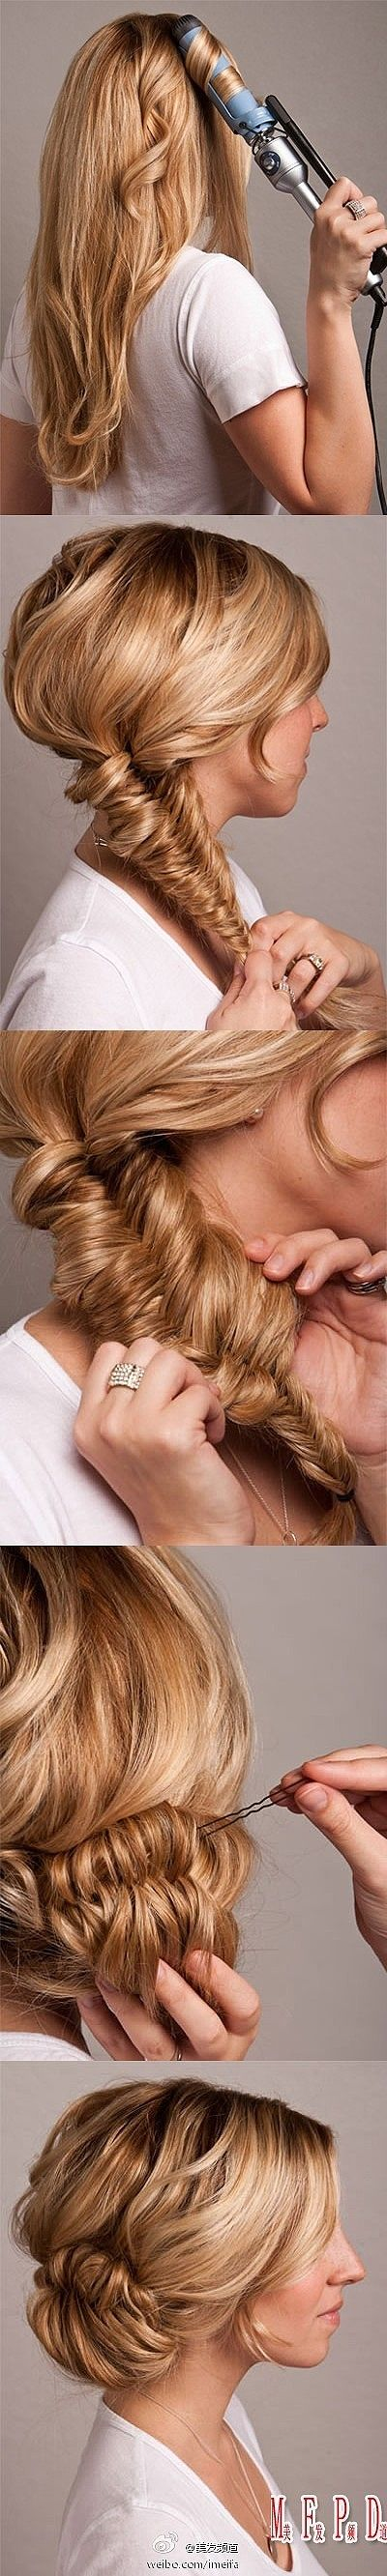 pretty- fish tail braid bun or you could leave it in fish tail